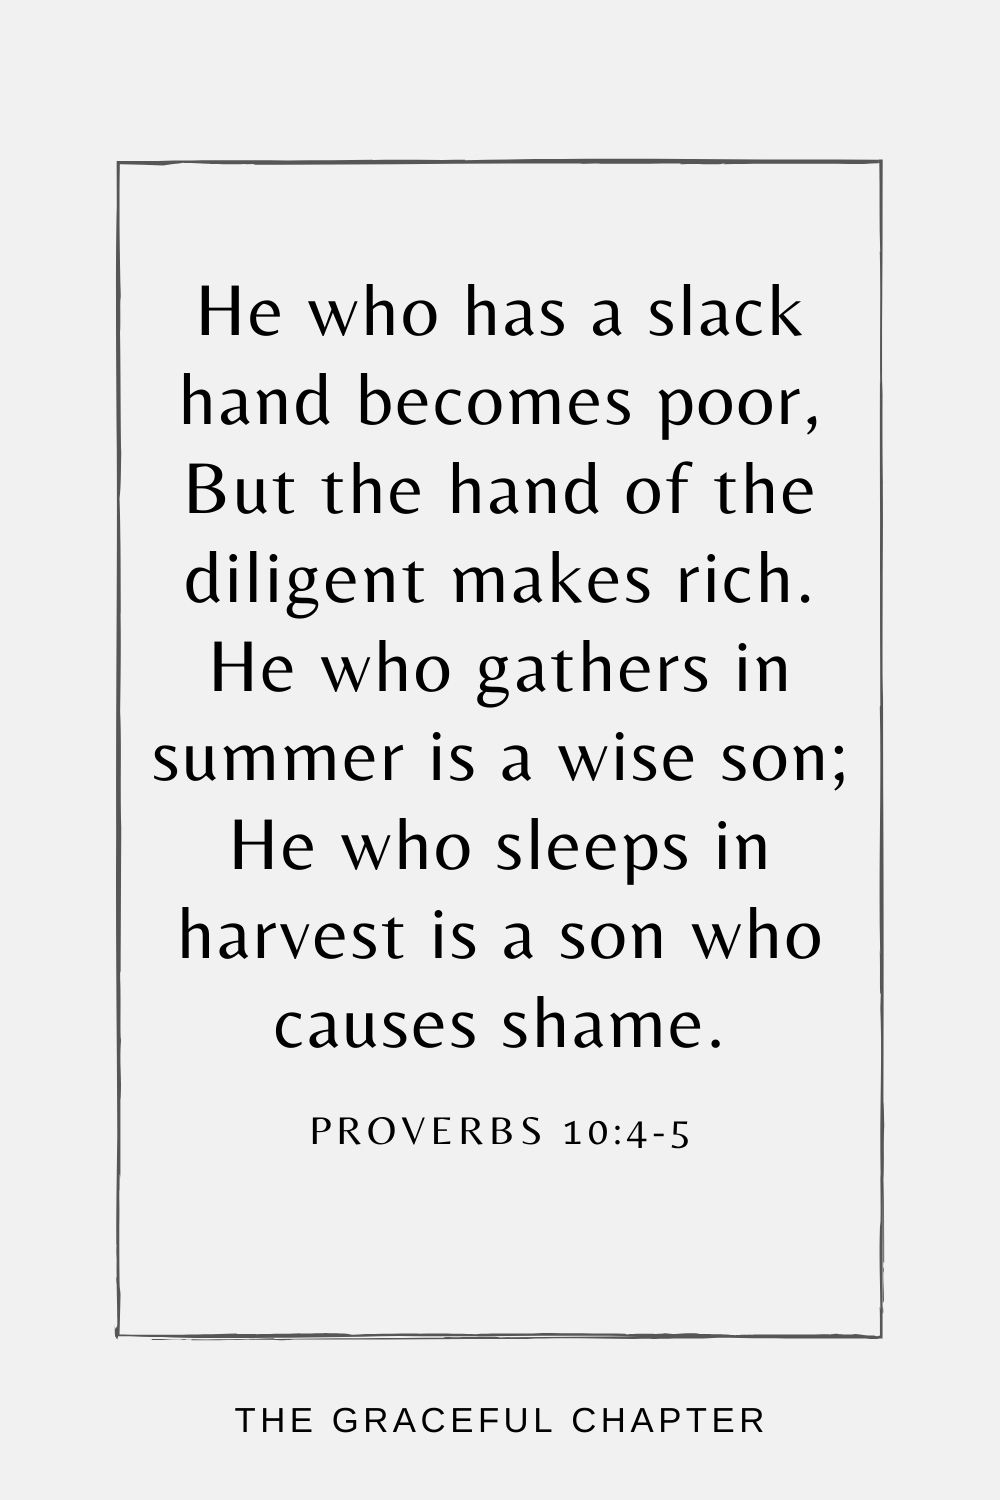 He who has a slack hand becomes poor, But the hand of the diligent makes rich. He who gathers in summer is a wise son; He who sleeps in harvest is a son who causes shame. Proverbs 10:4-5